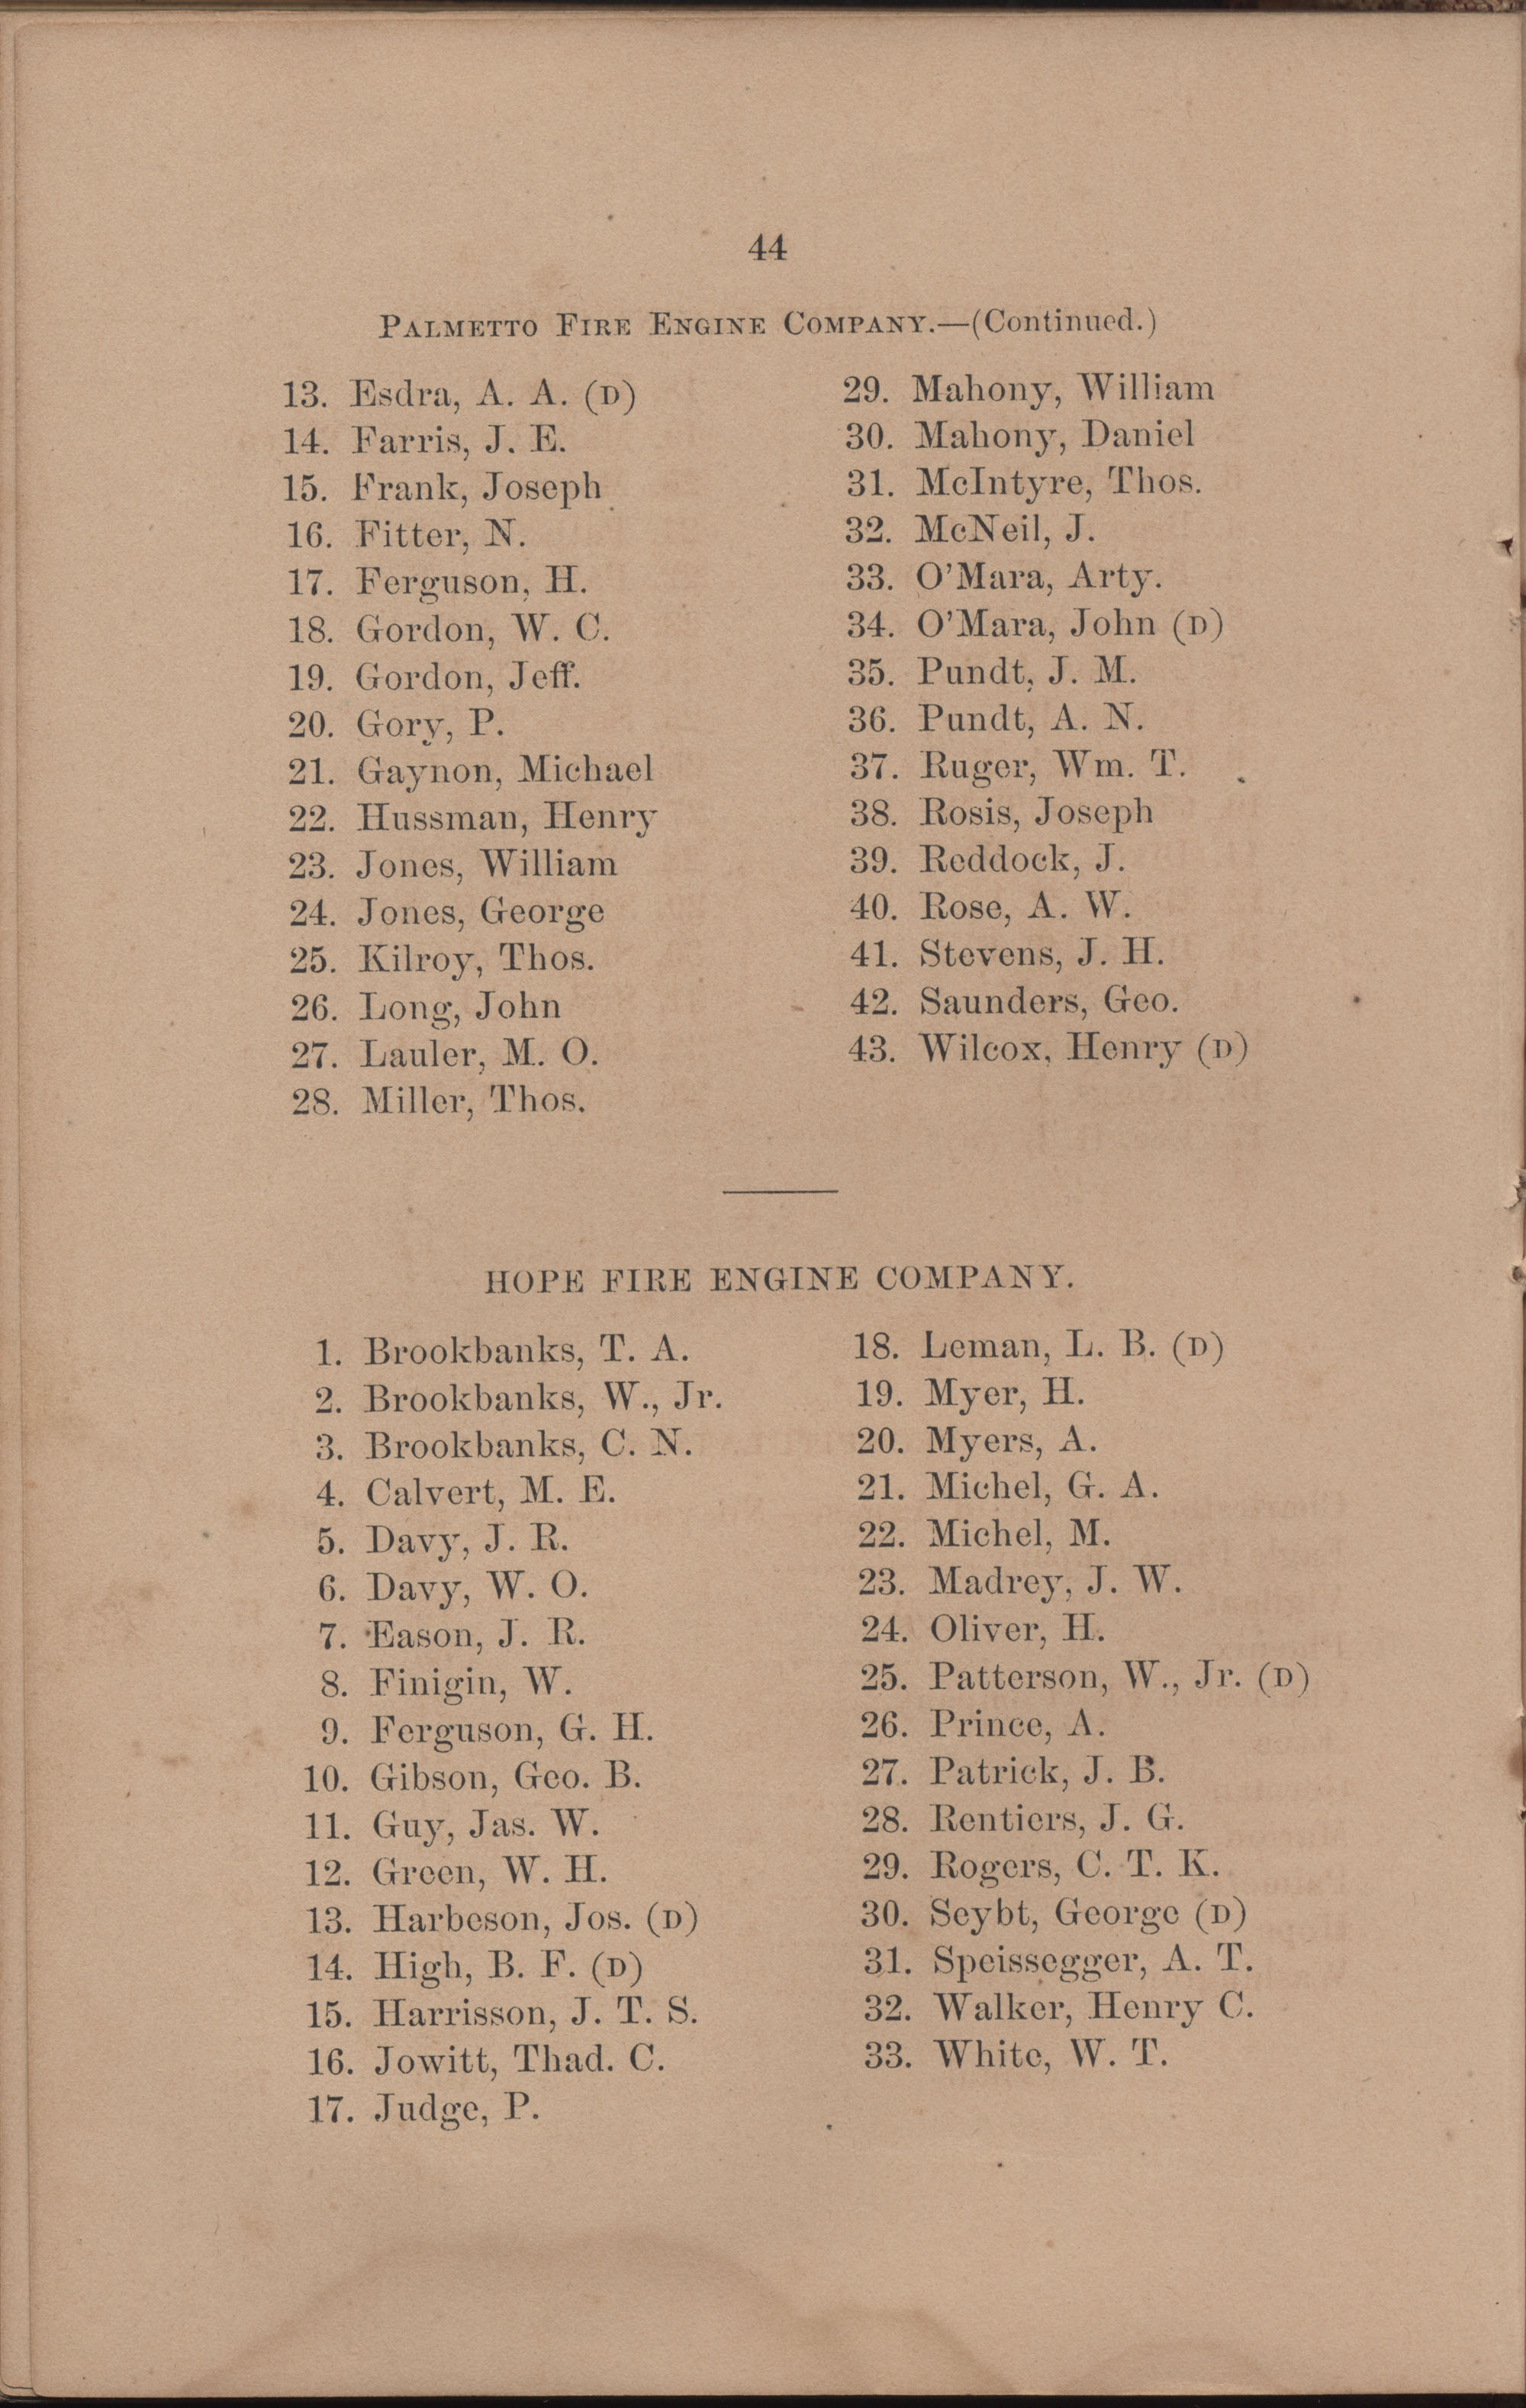 Annual Report of the Chief of the Fire Department of the City of Charleston, page 140